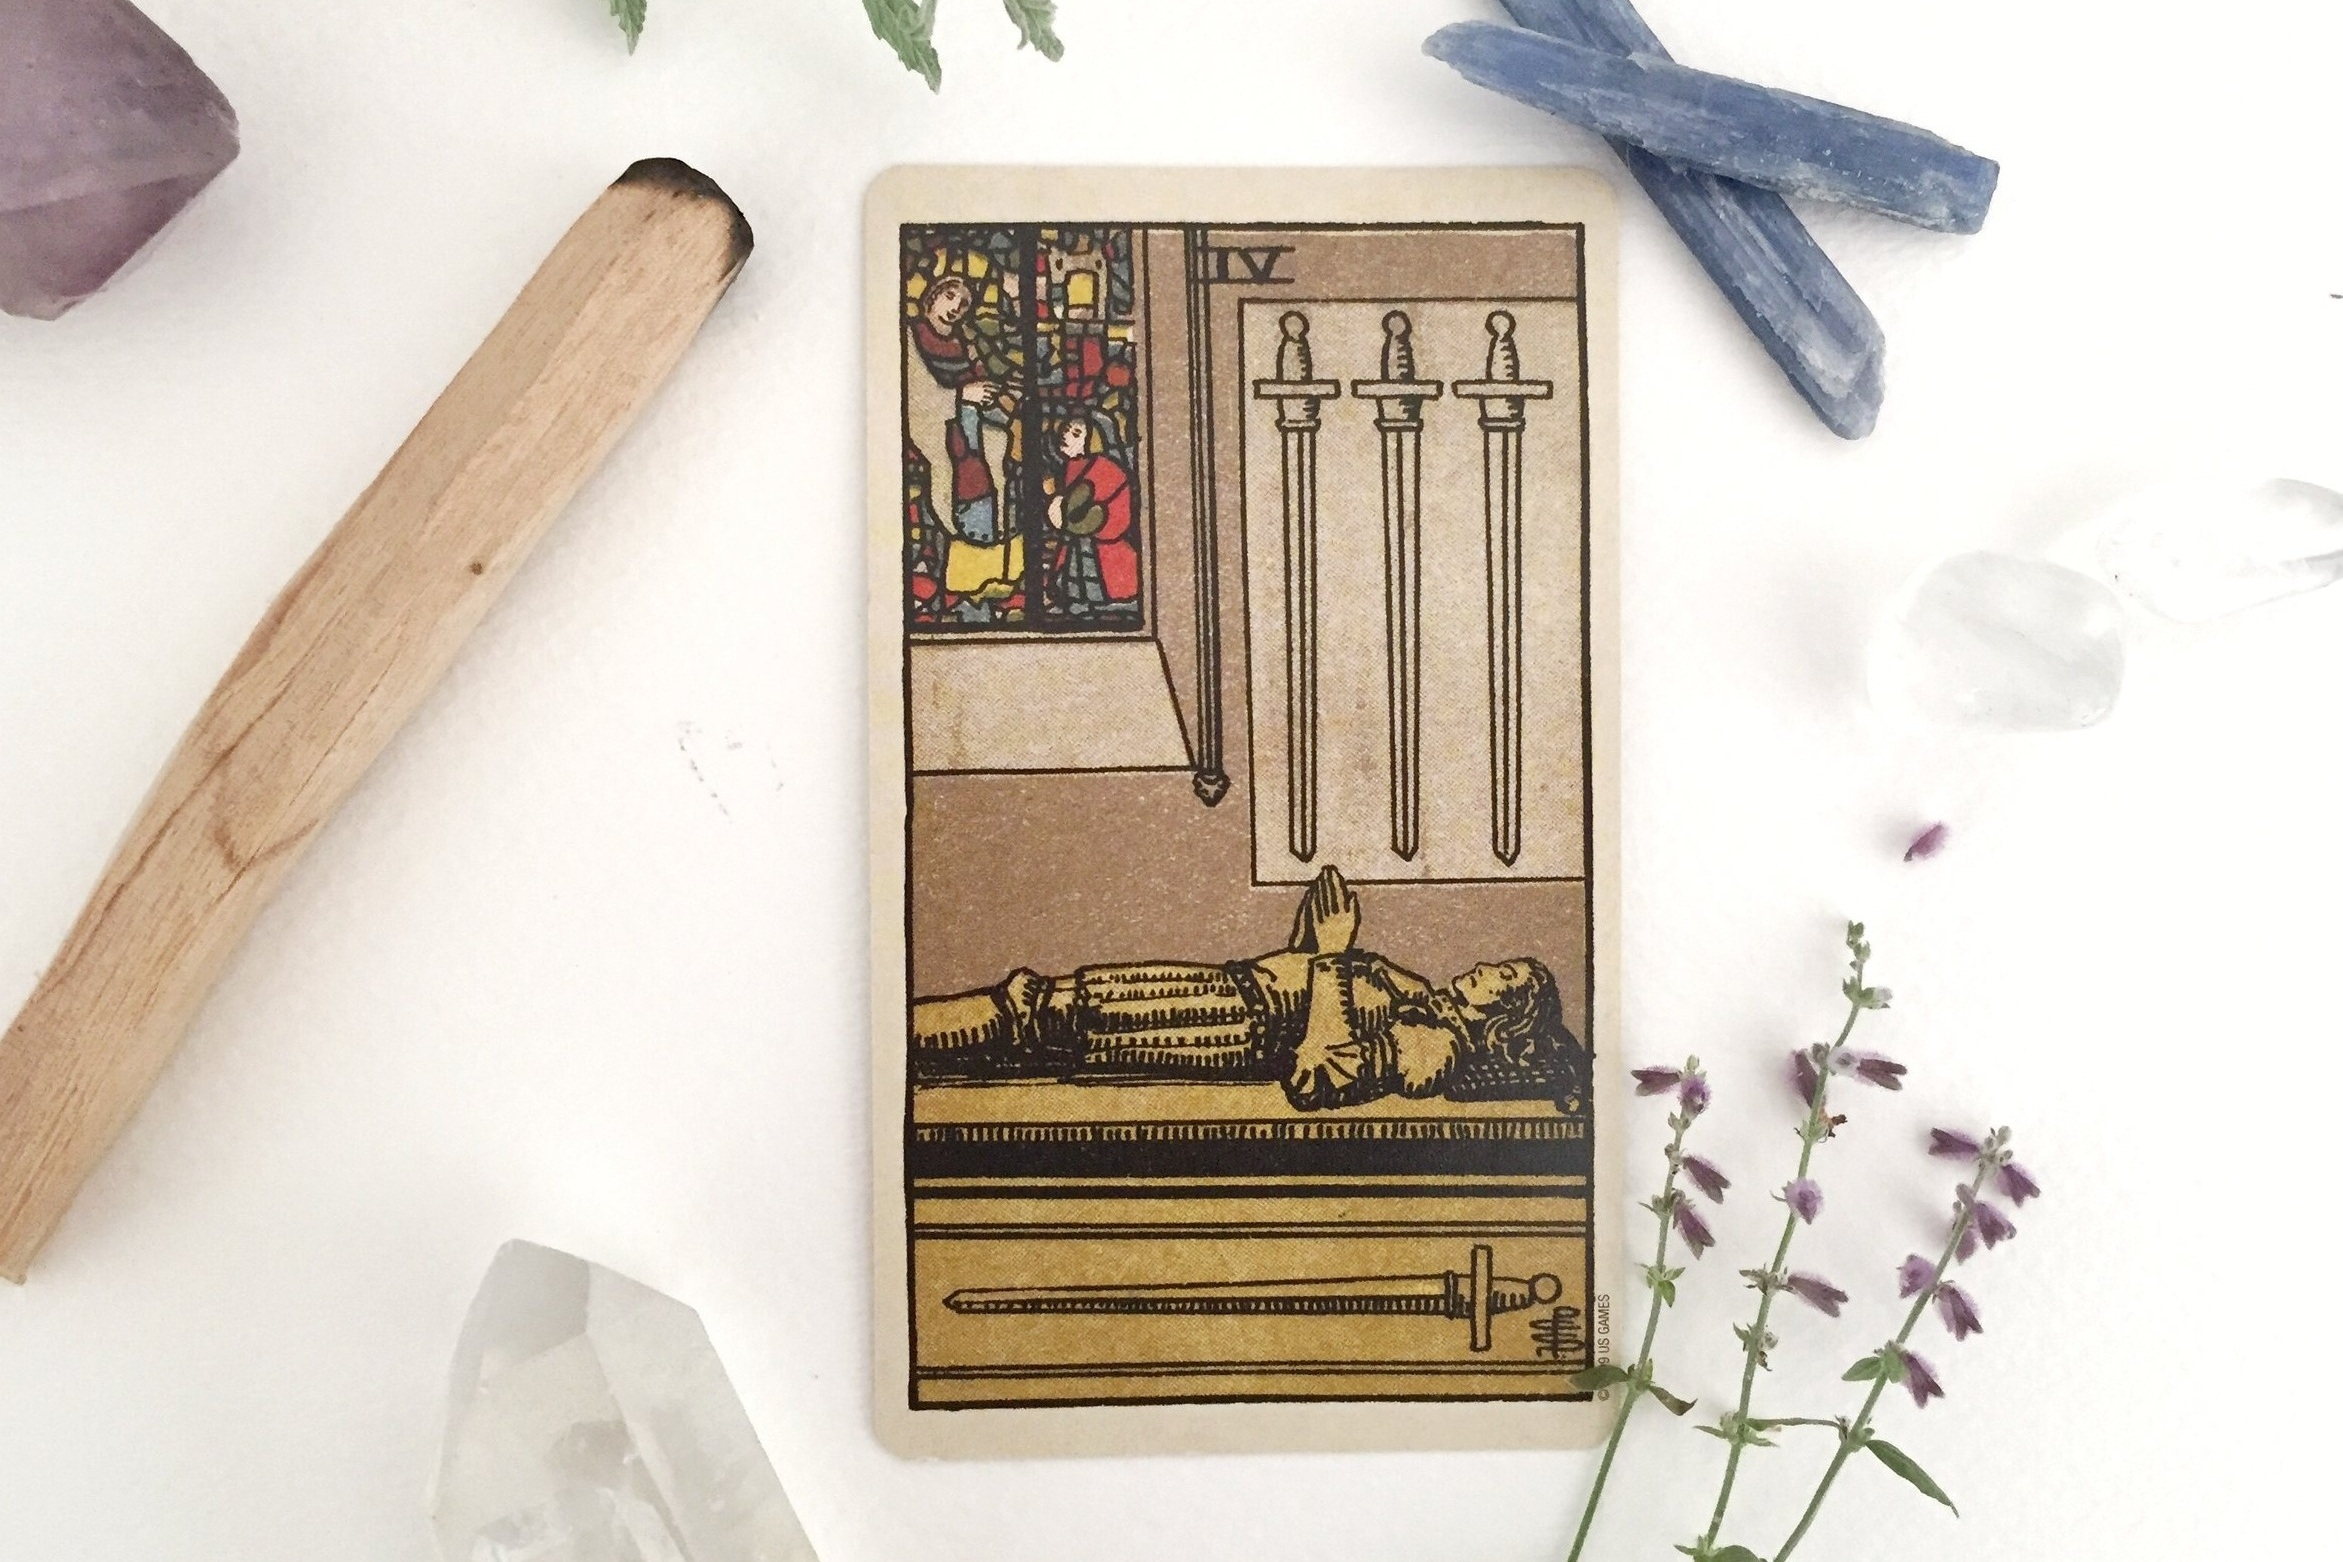 Tarot for Self-Care - Meditations. recipes, and practices for self-care inspired by the tarot.